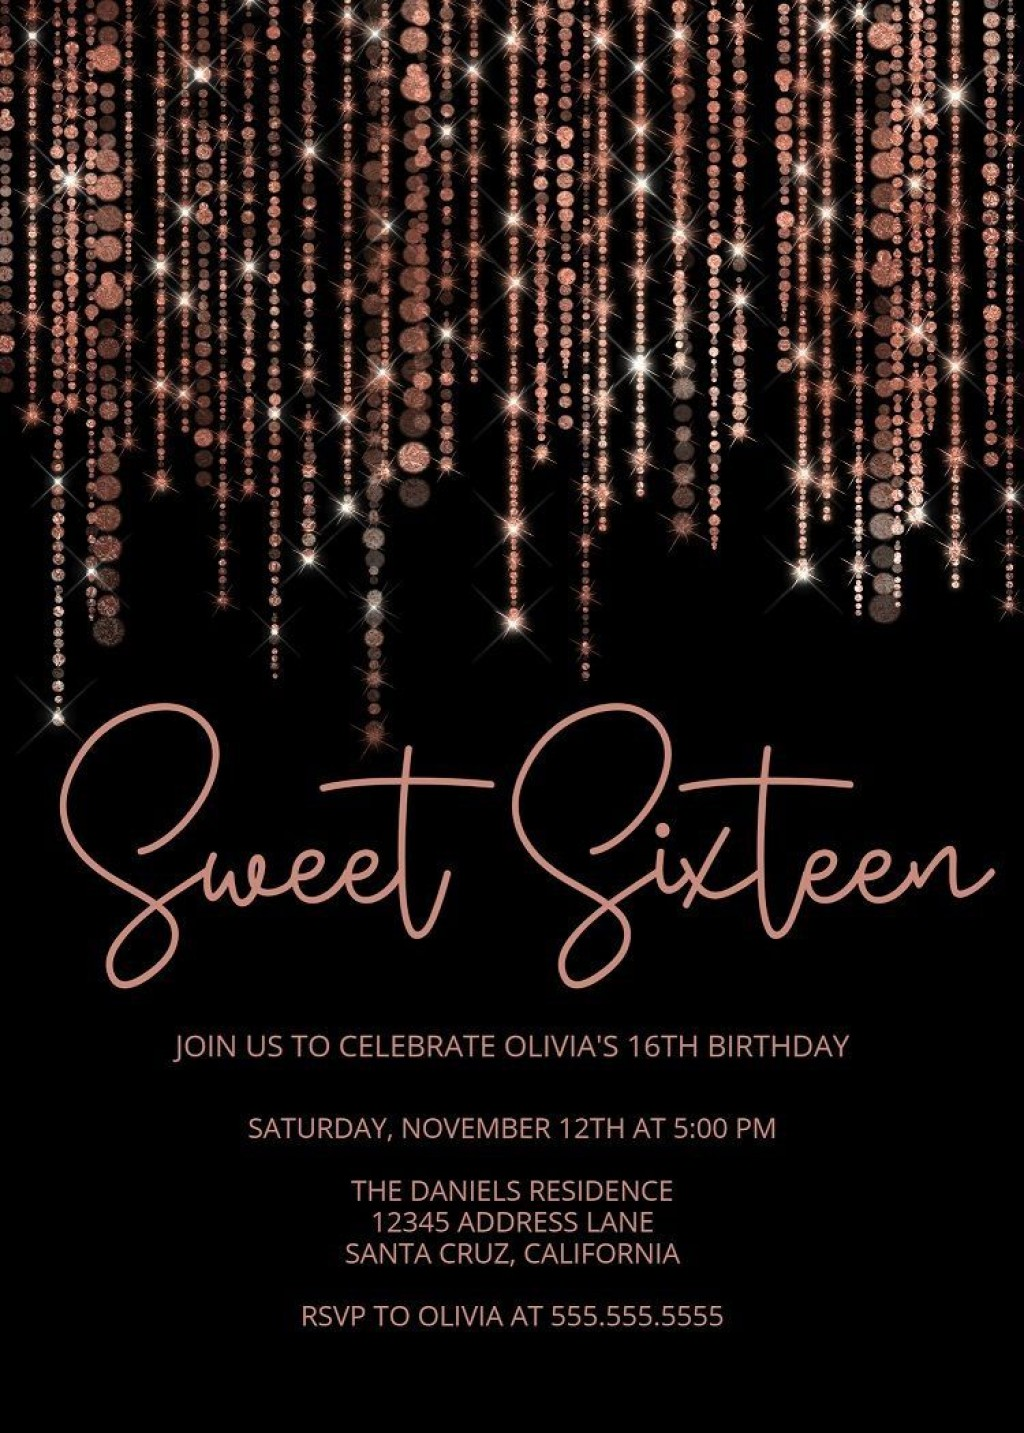 007 Excellent Sweet Sixteen Invitation Template Concept  Templates Blue 16 Party FreeLarge